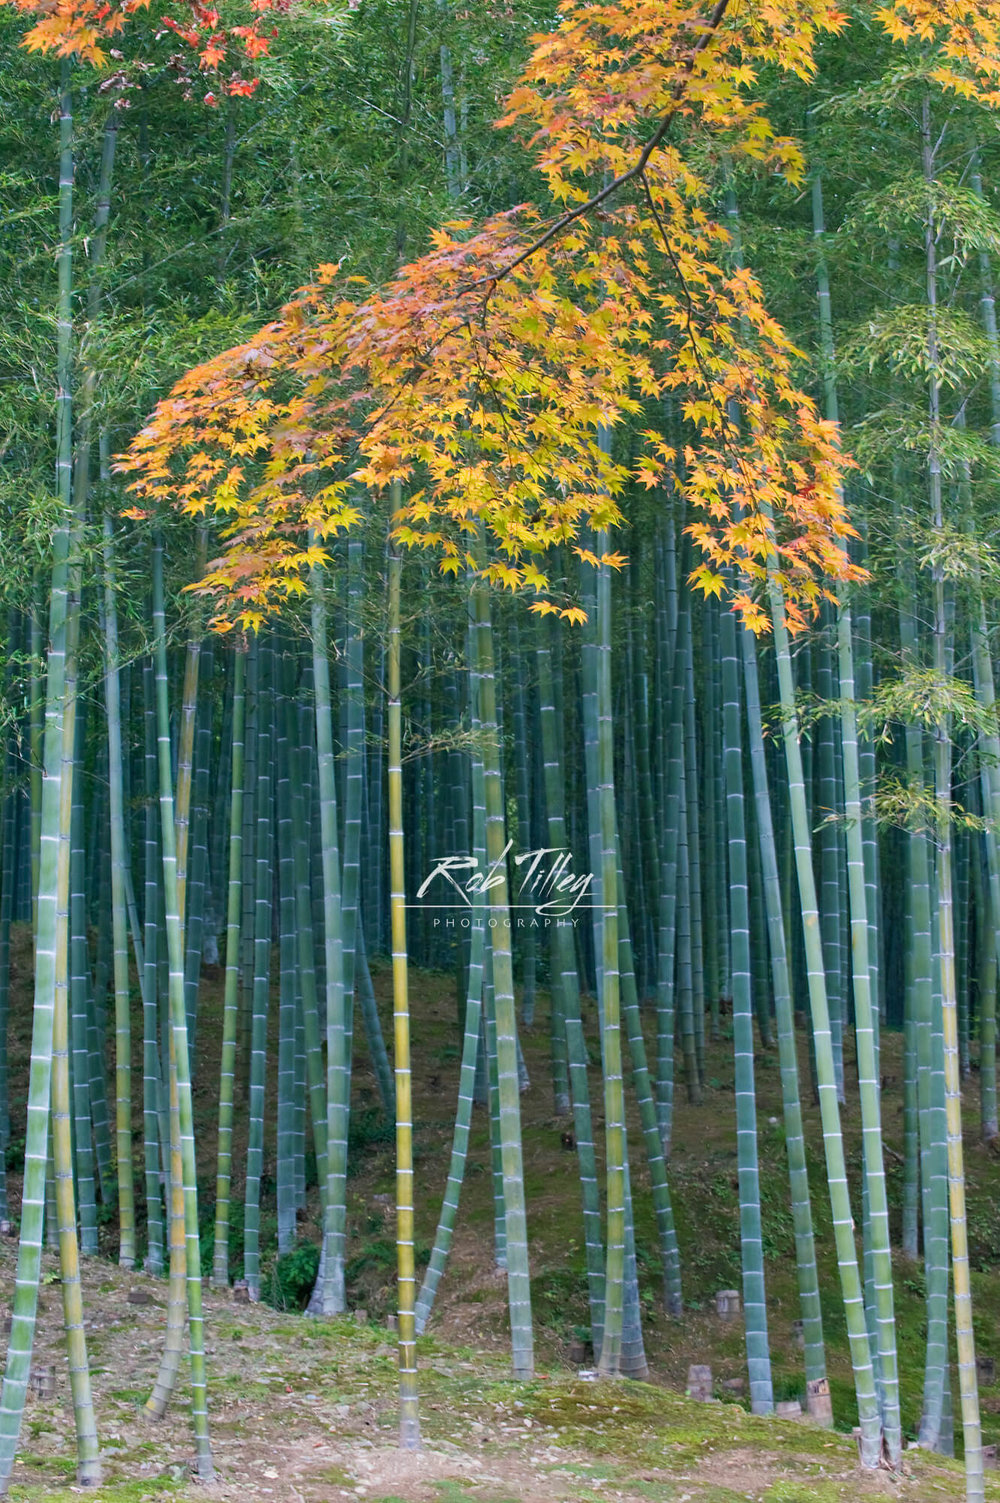 Autumn Bamboo Grove.jpg